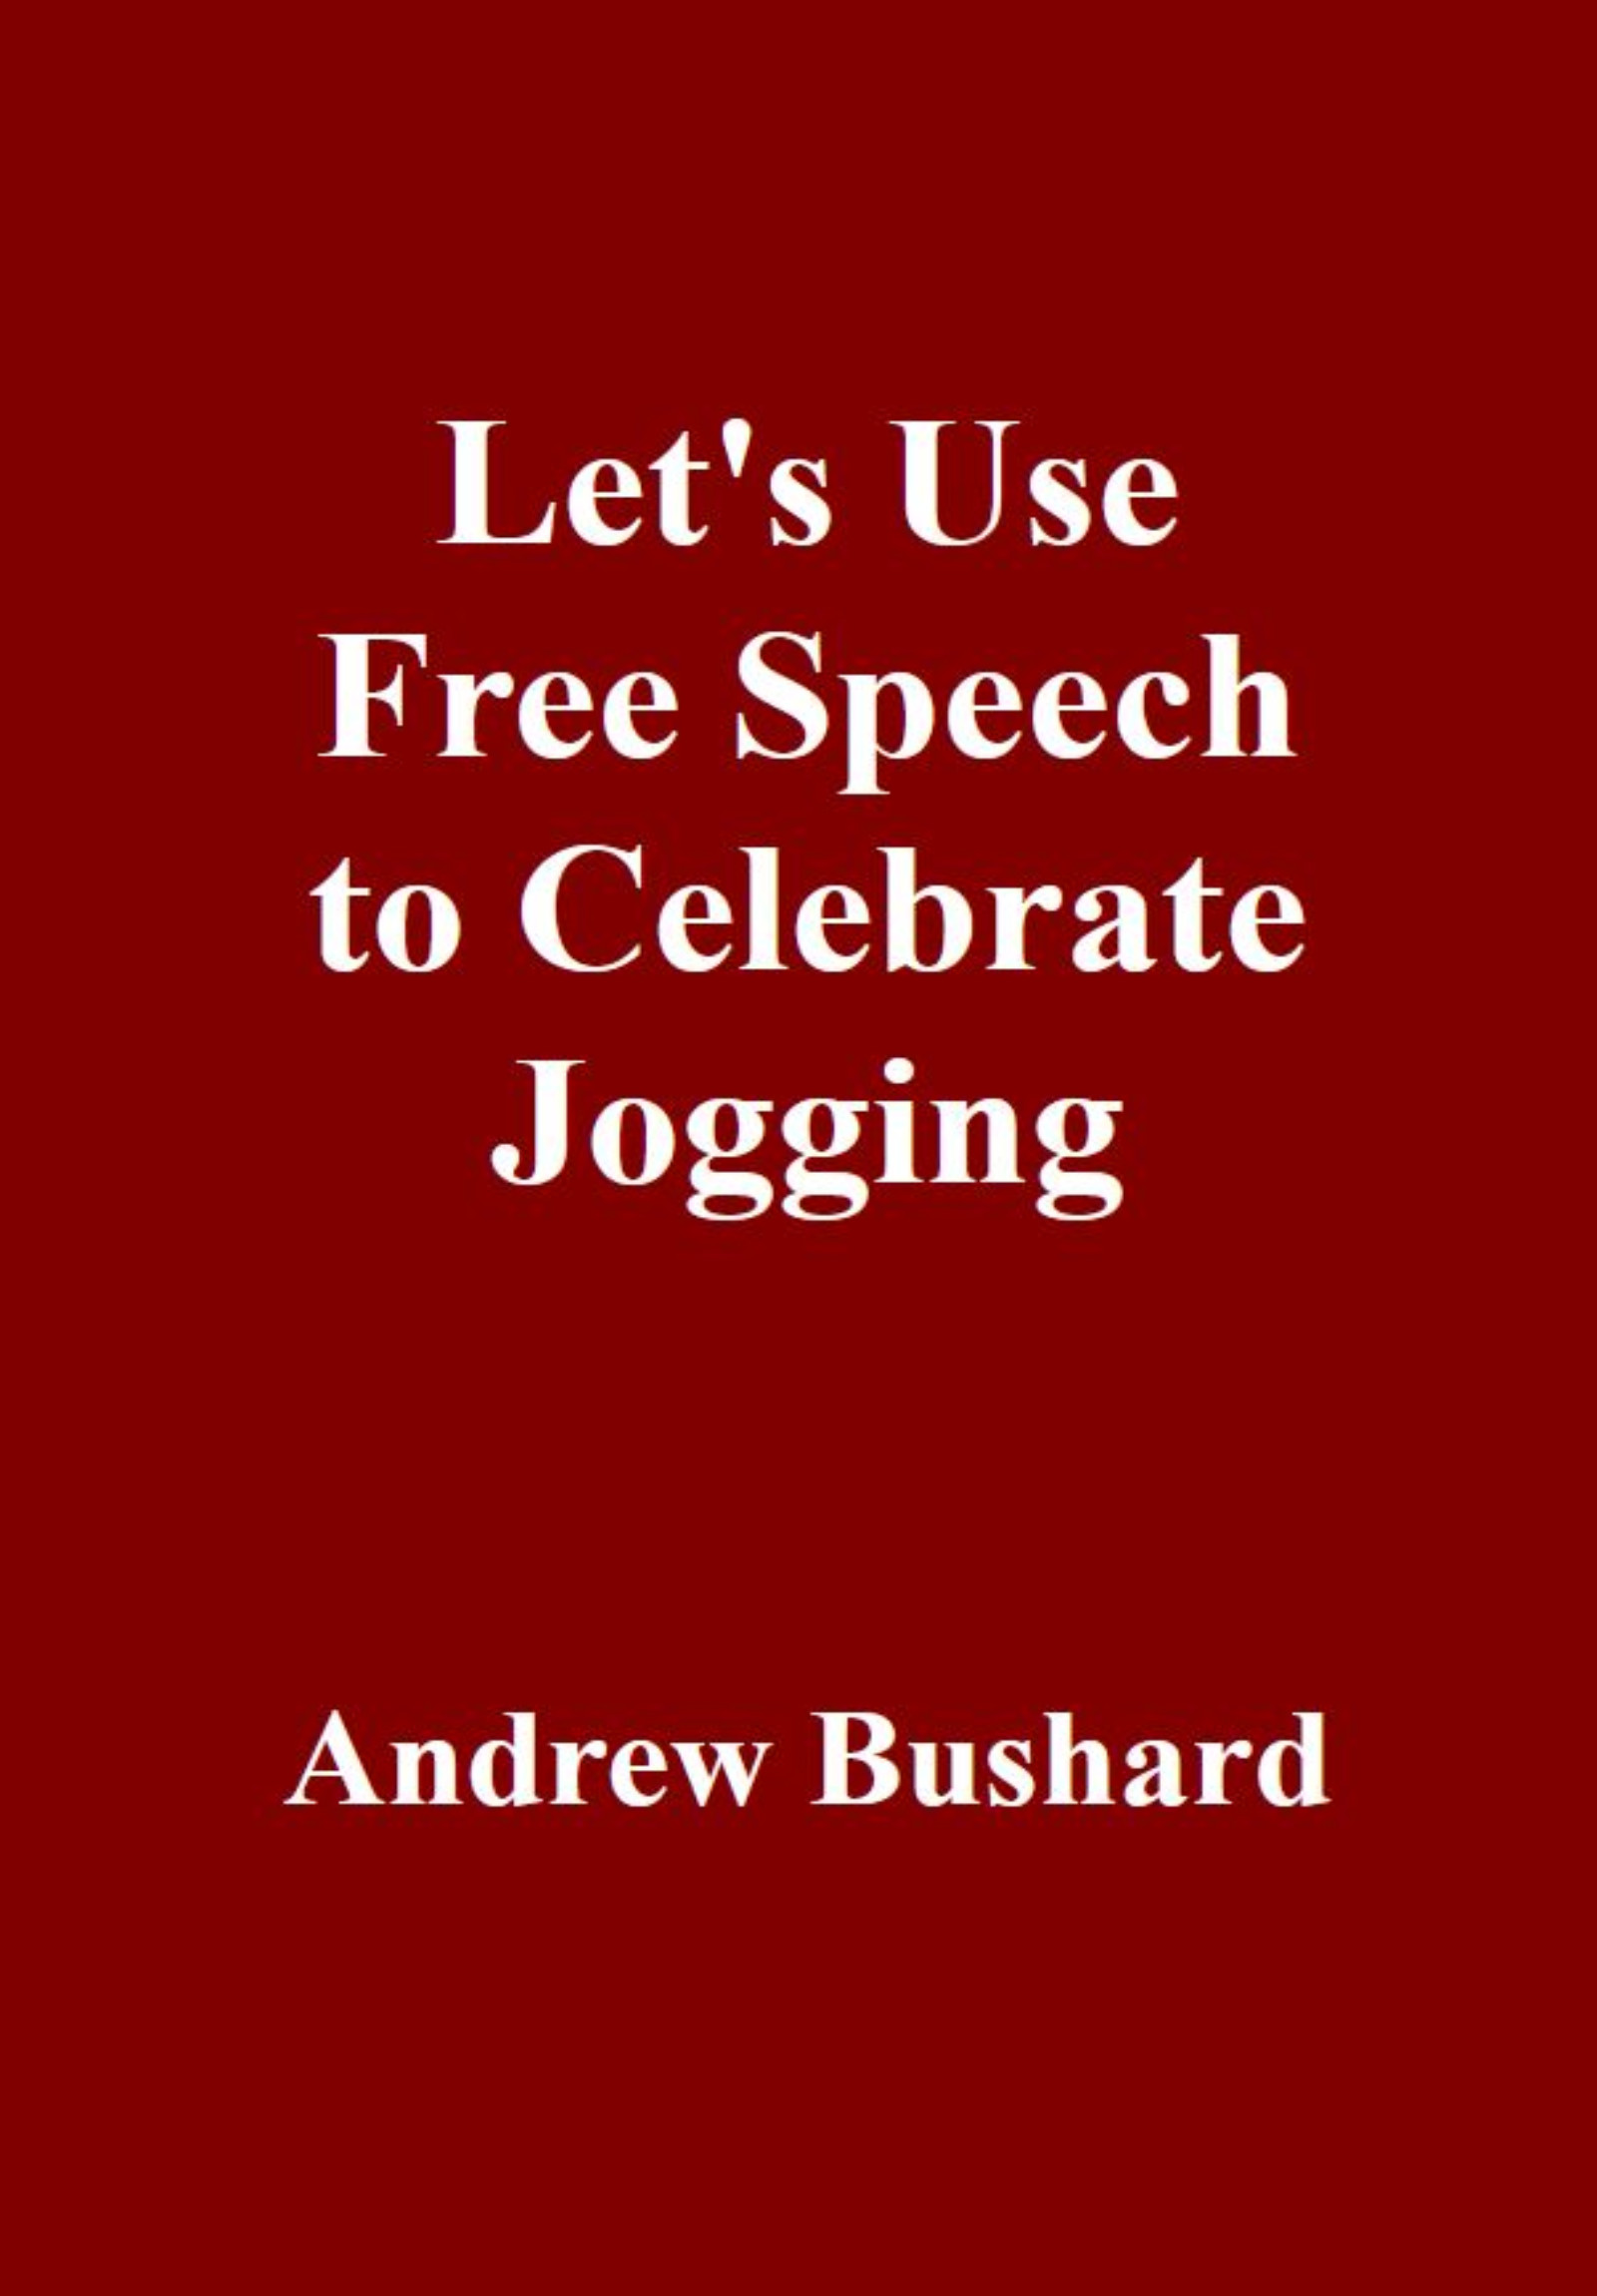 Let's Use Free Speech to Celebrate Jogging's featured image